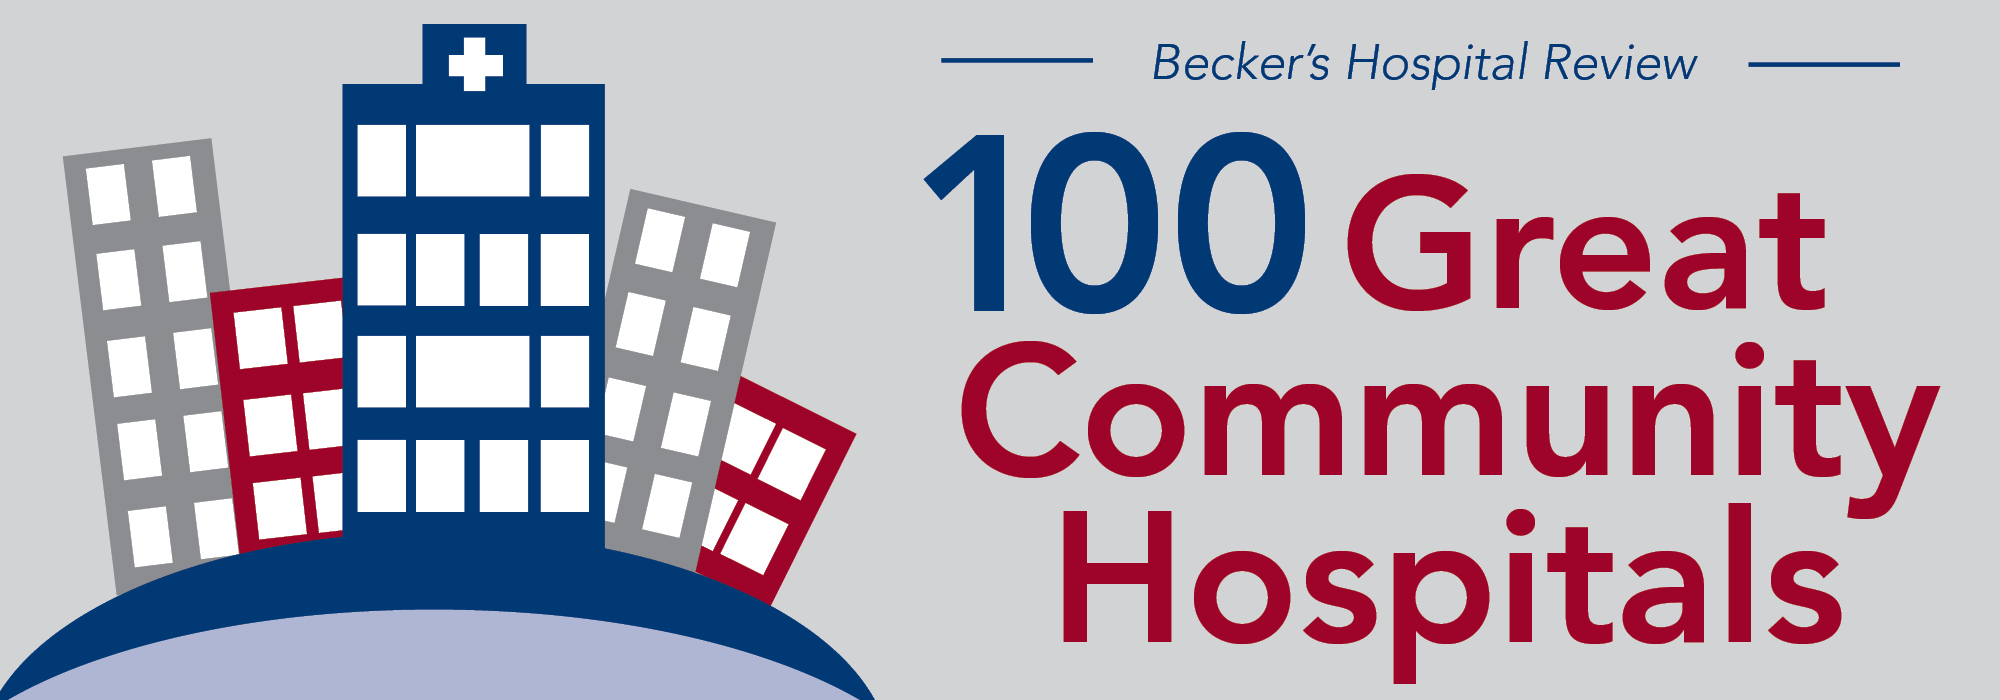 Great Community Hospitals 2017 Logo